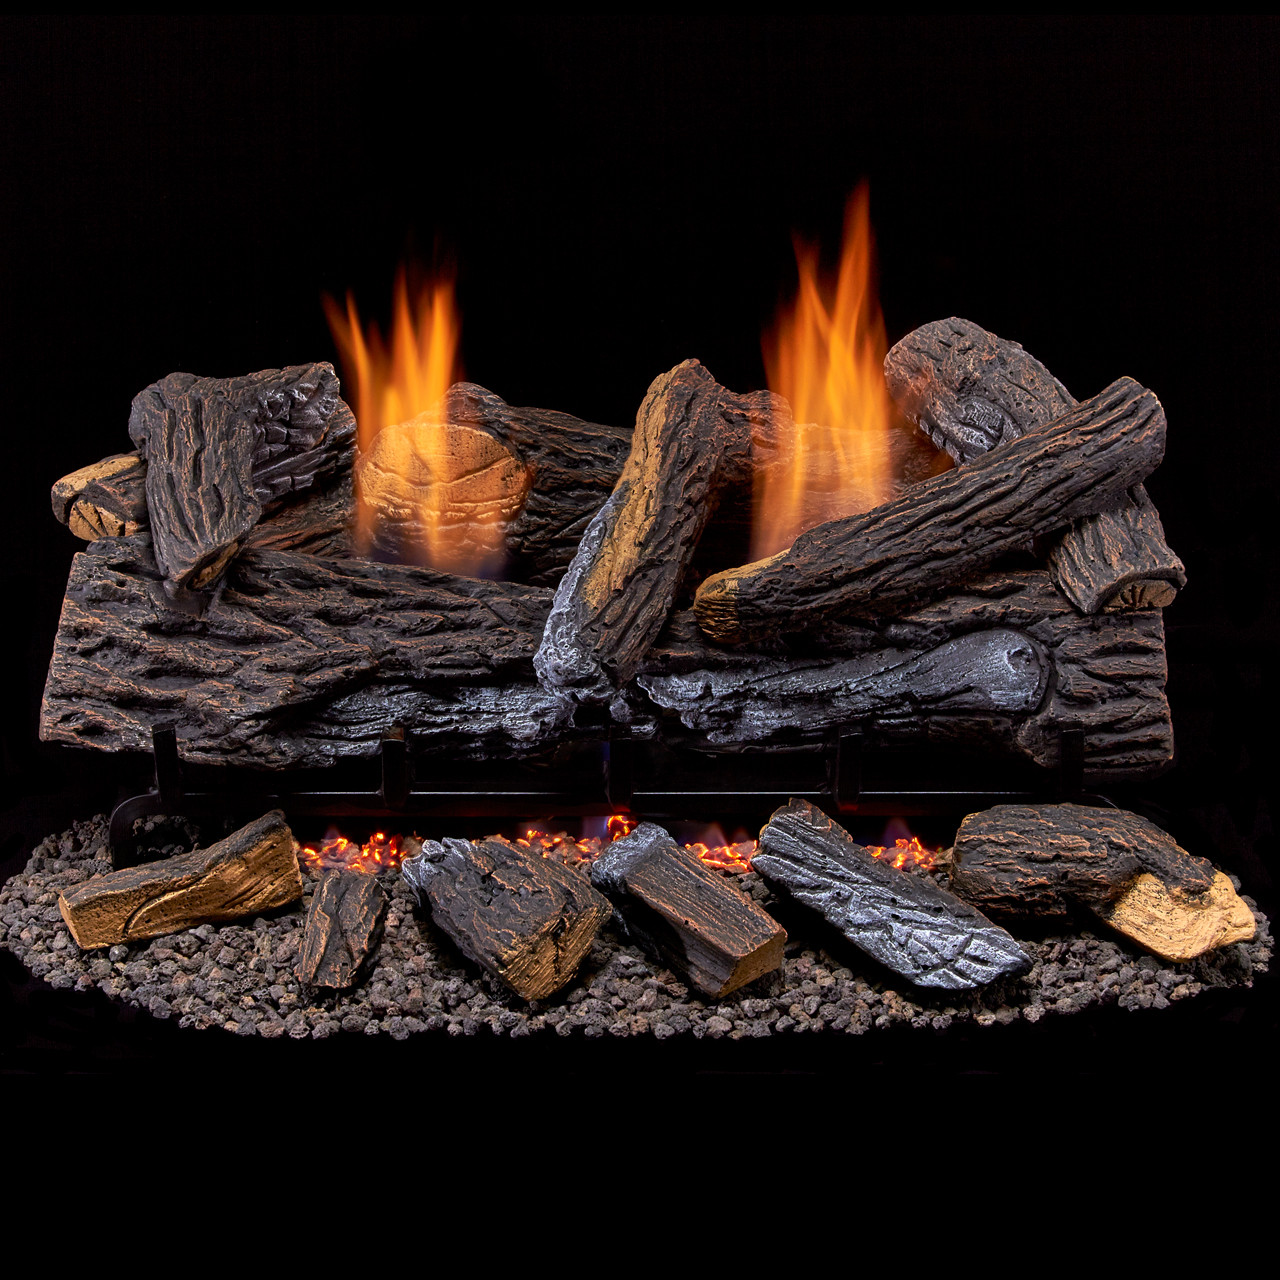 Best vent free gas logs - Duluth Forge Vent Free Dual Fuel Gas Log Set With Remote Control